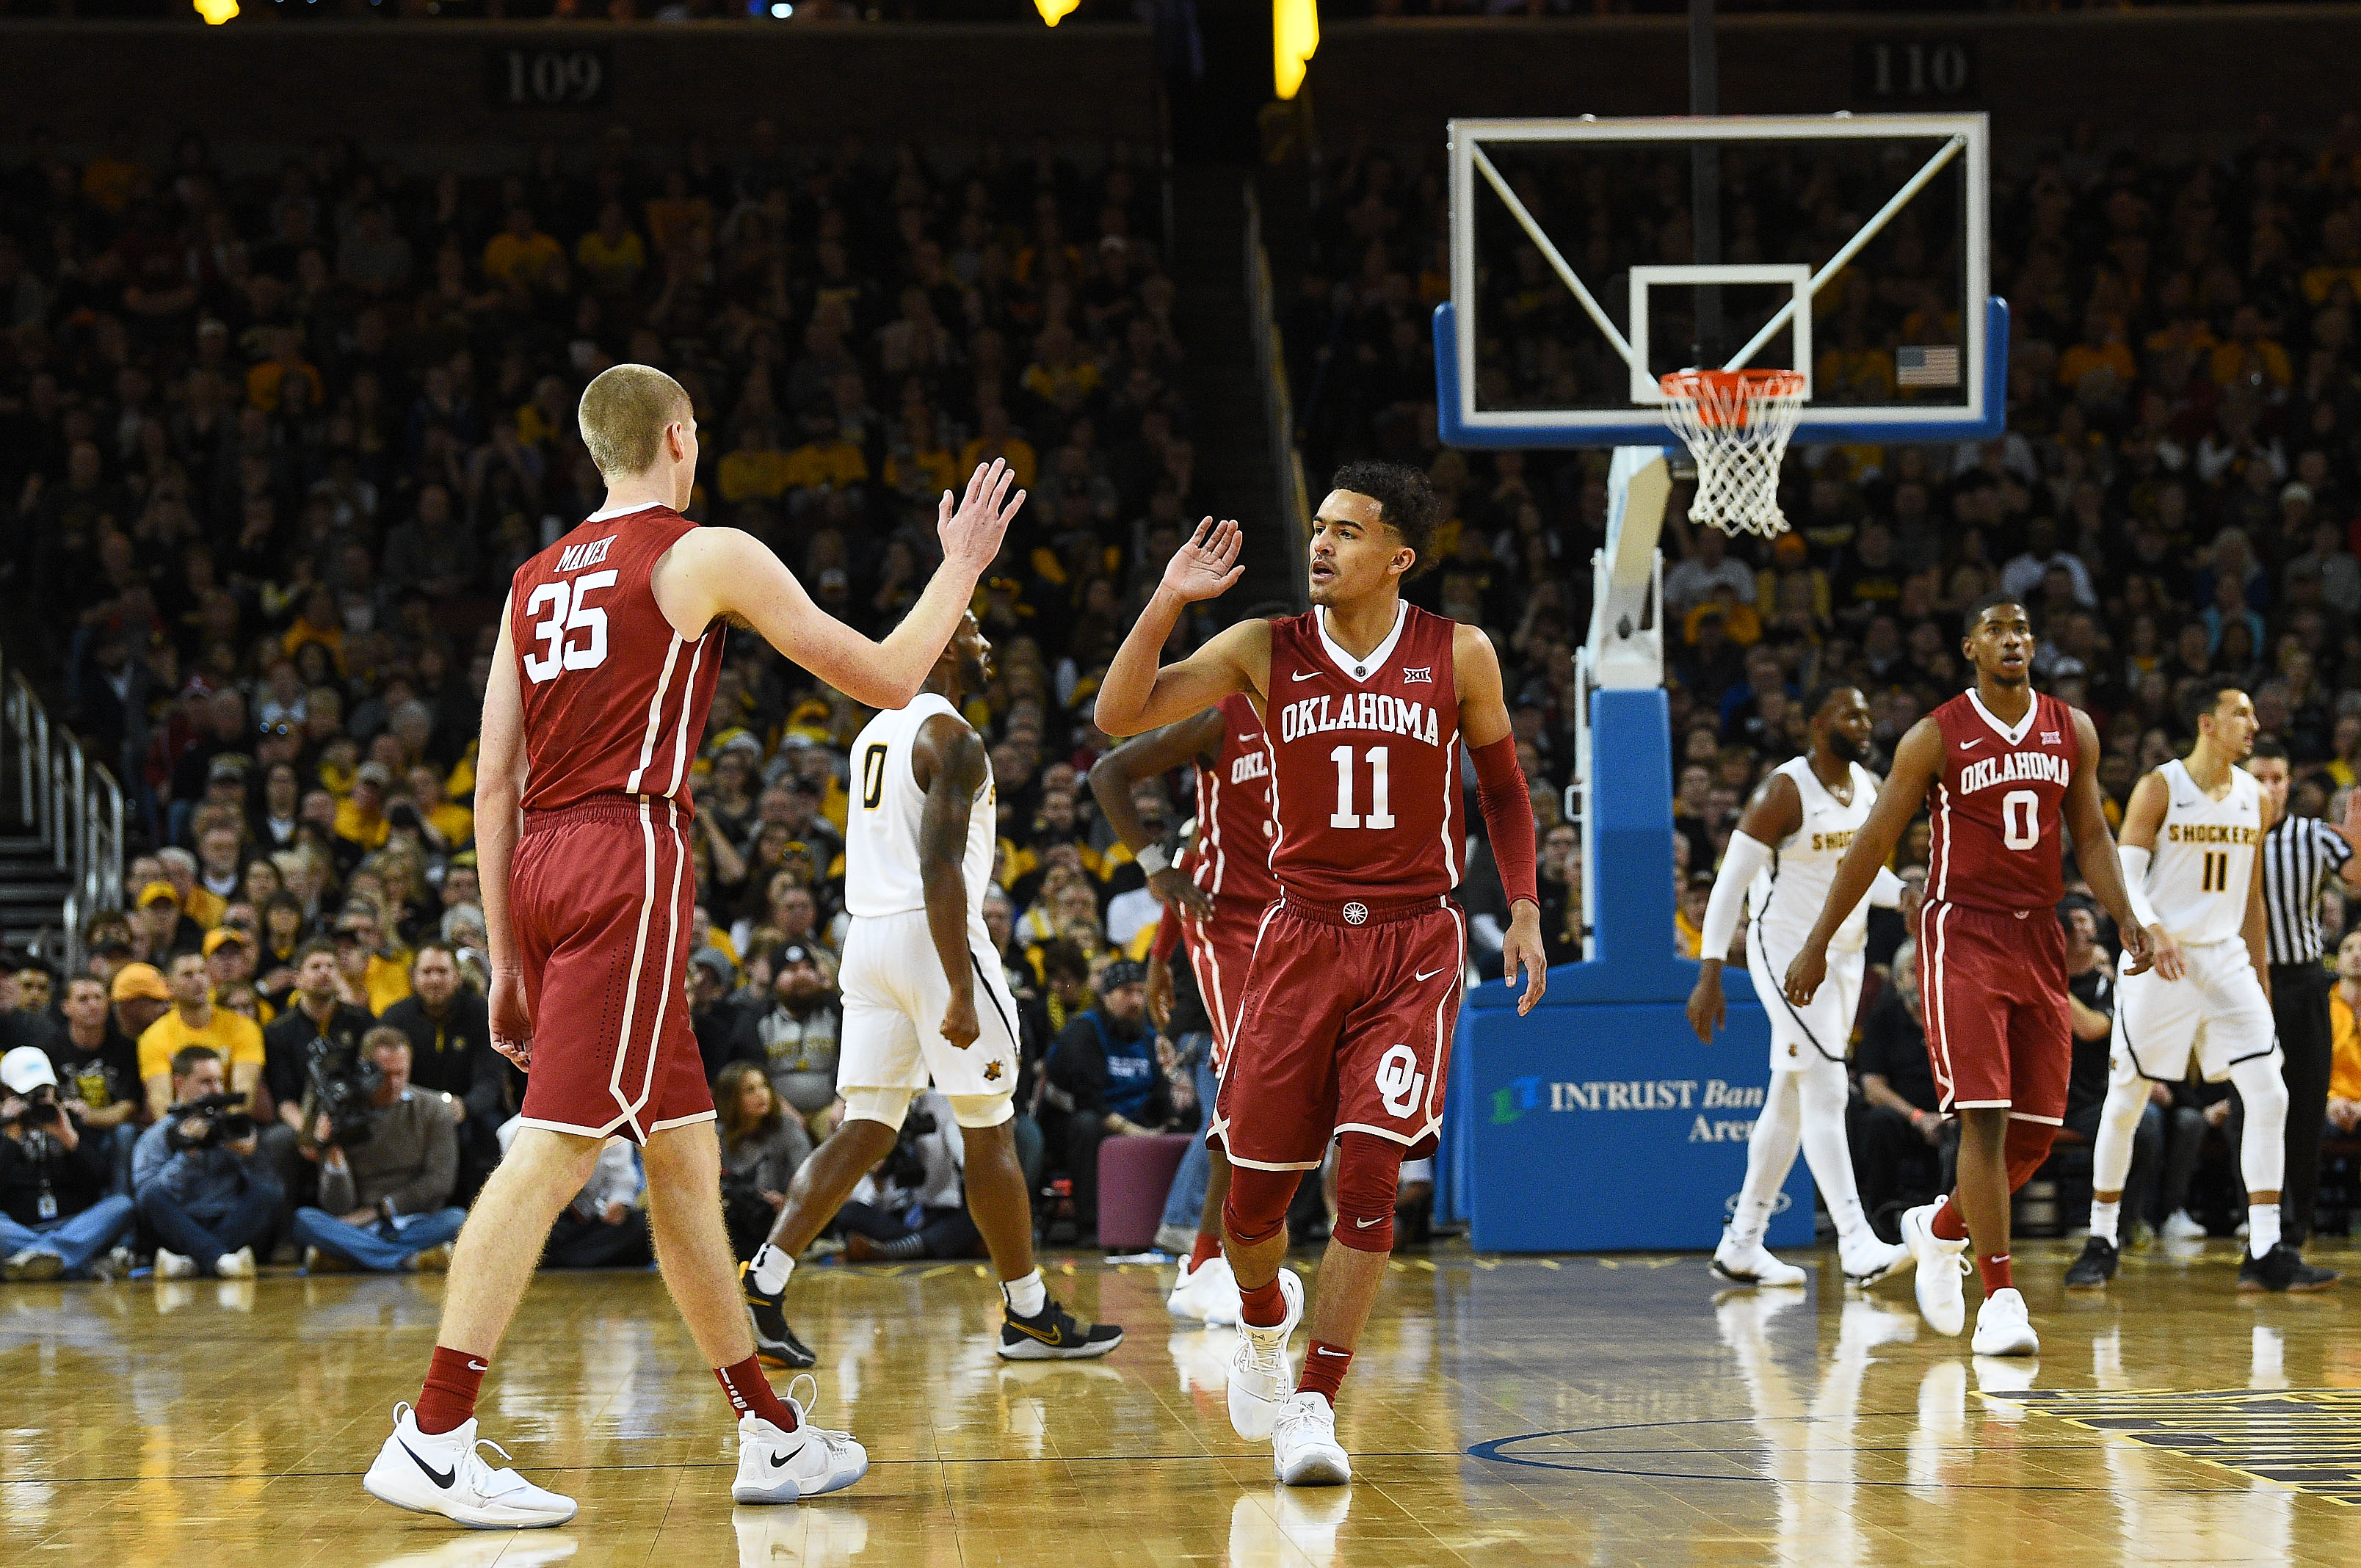 December 16, 2017: Oklahoma Sooners guard Trae Young (11) high fives Oklahoma Sooners forward Brady Manek (35) as the teams head for a timeout during the NCAA Basketball Game between the Oklahoma Sooners and the Wichita State Shockers at Intrust Bank Arena in Wichita,Kansas. Kendall Shaw/CSM(Credit Image: © Kendall Shaw/CSM via ZUMA Wire)